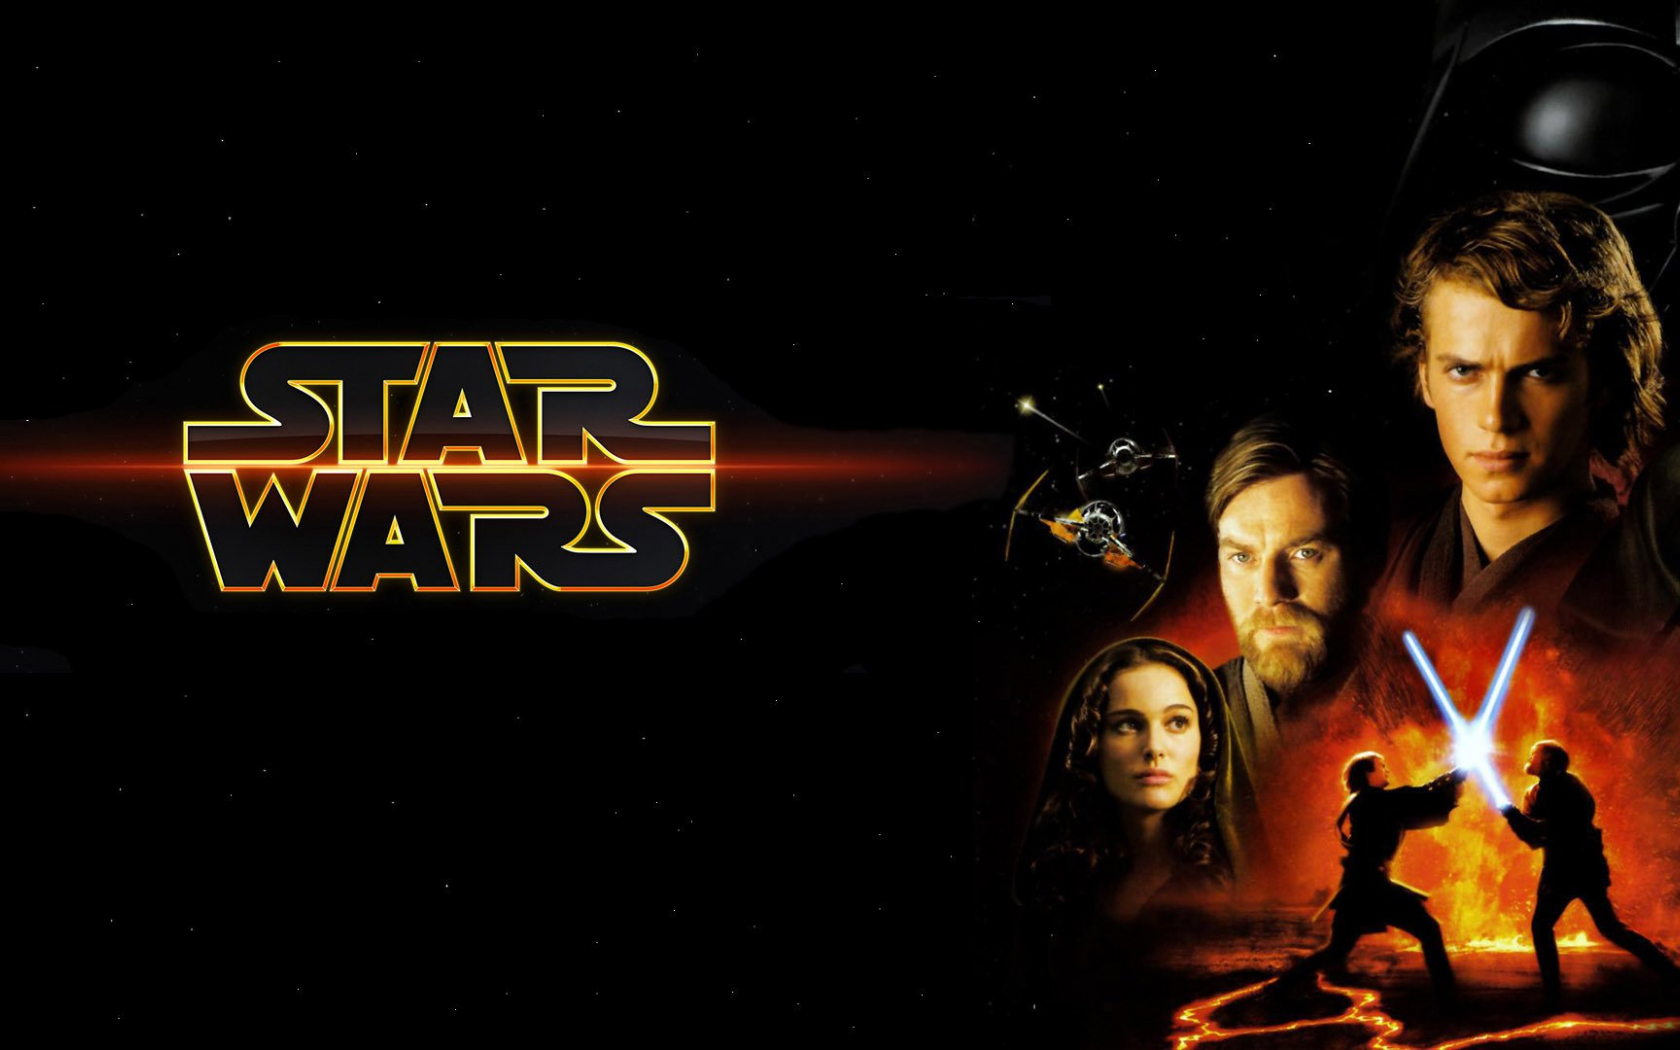 Free Download Star Wars Episode Iii Revenge Of The Sith Wallpaper